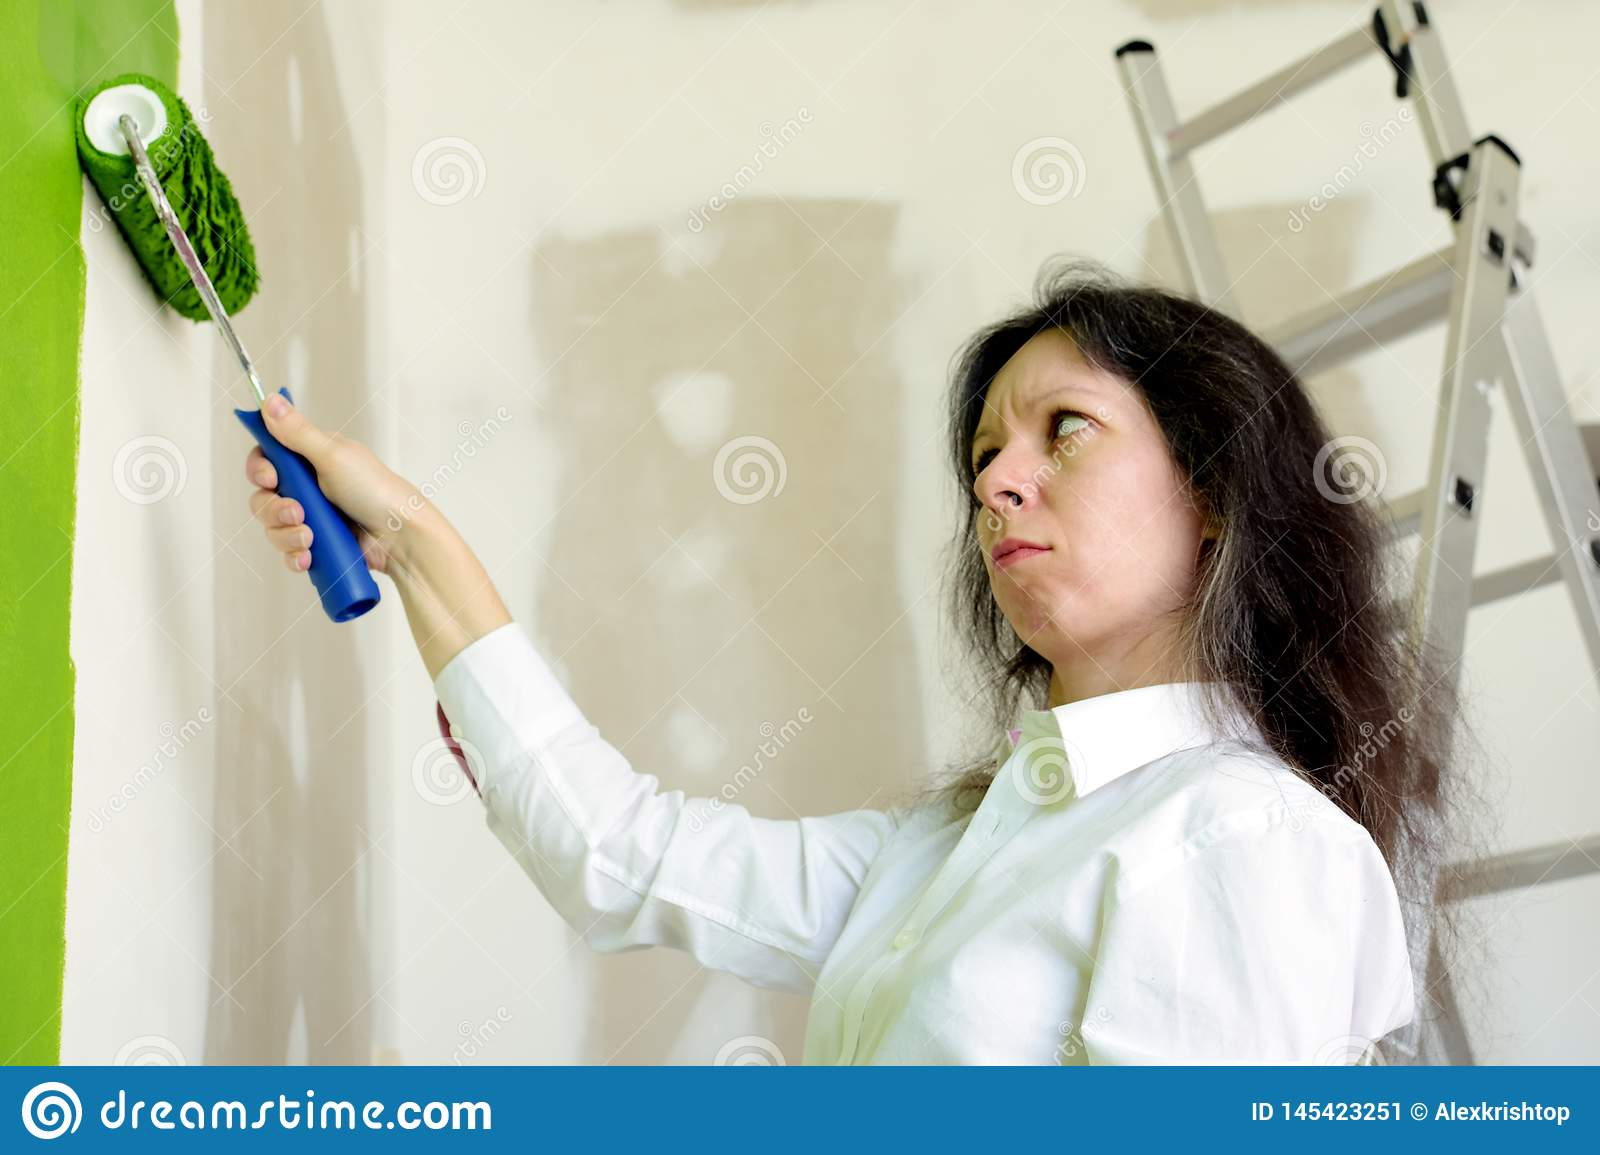 Young woman in white shirt upset with a green color of a painted wall